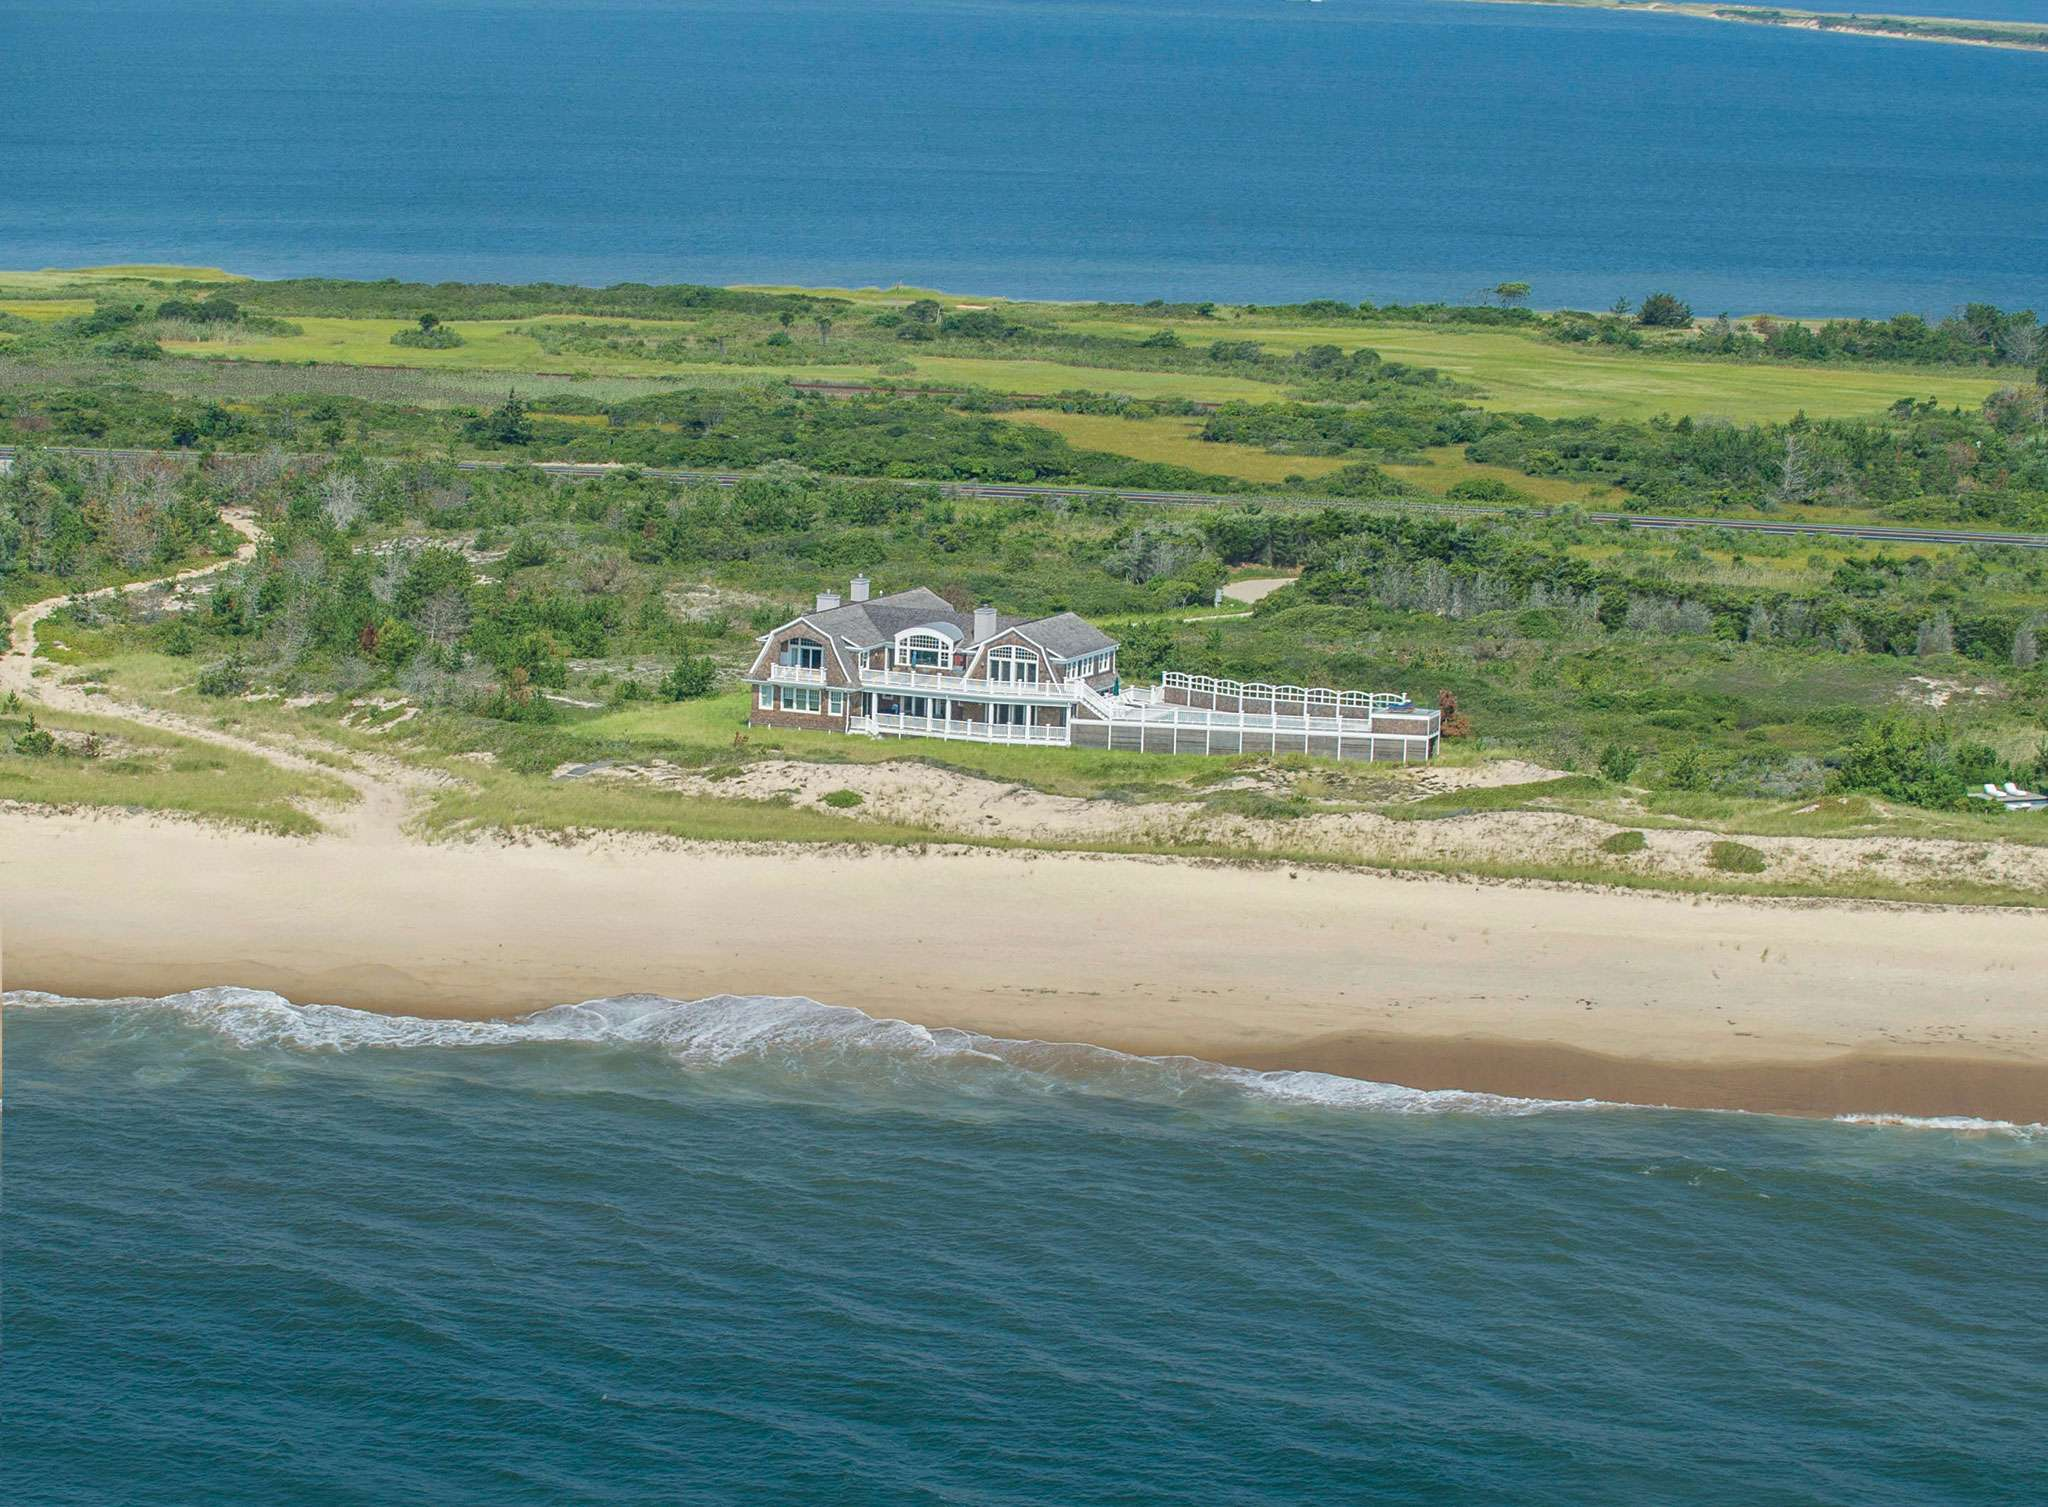 Single Family Home for Sale at Shore Thing 13 Beach Plum Court, Amagansett, New York